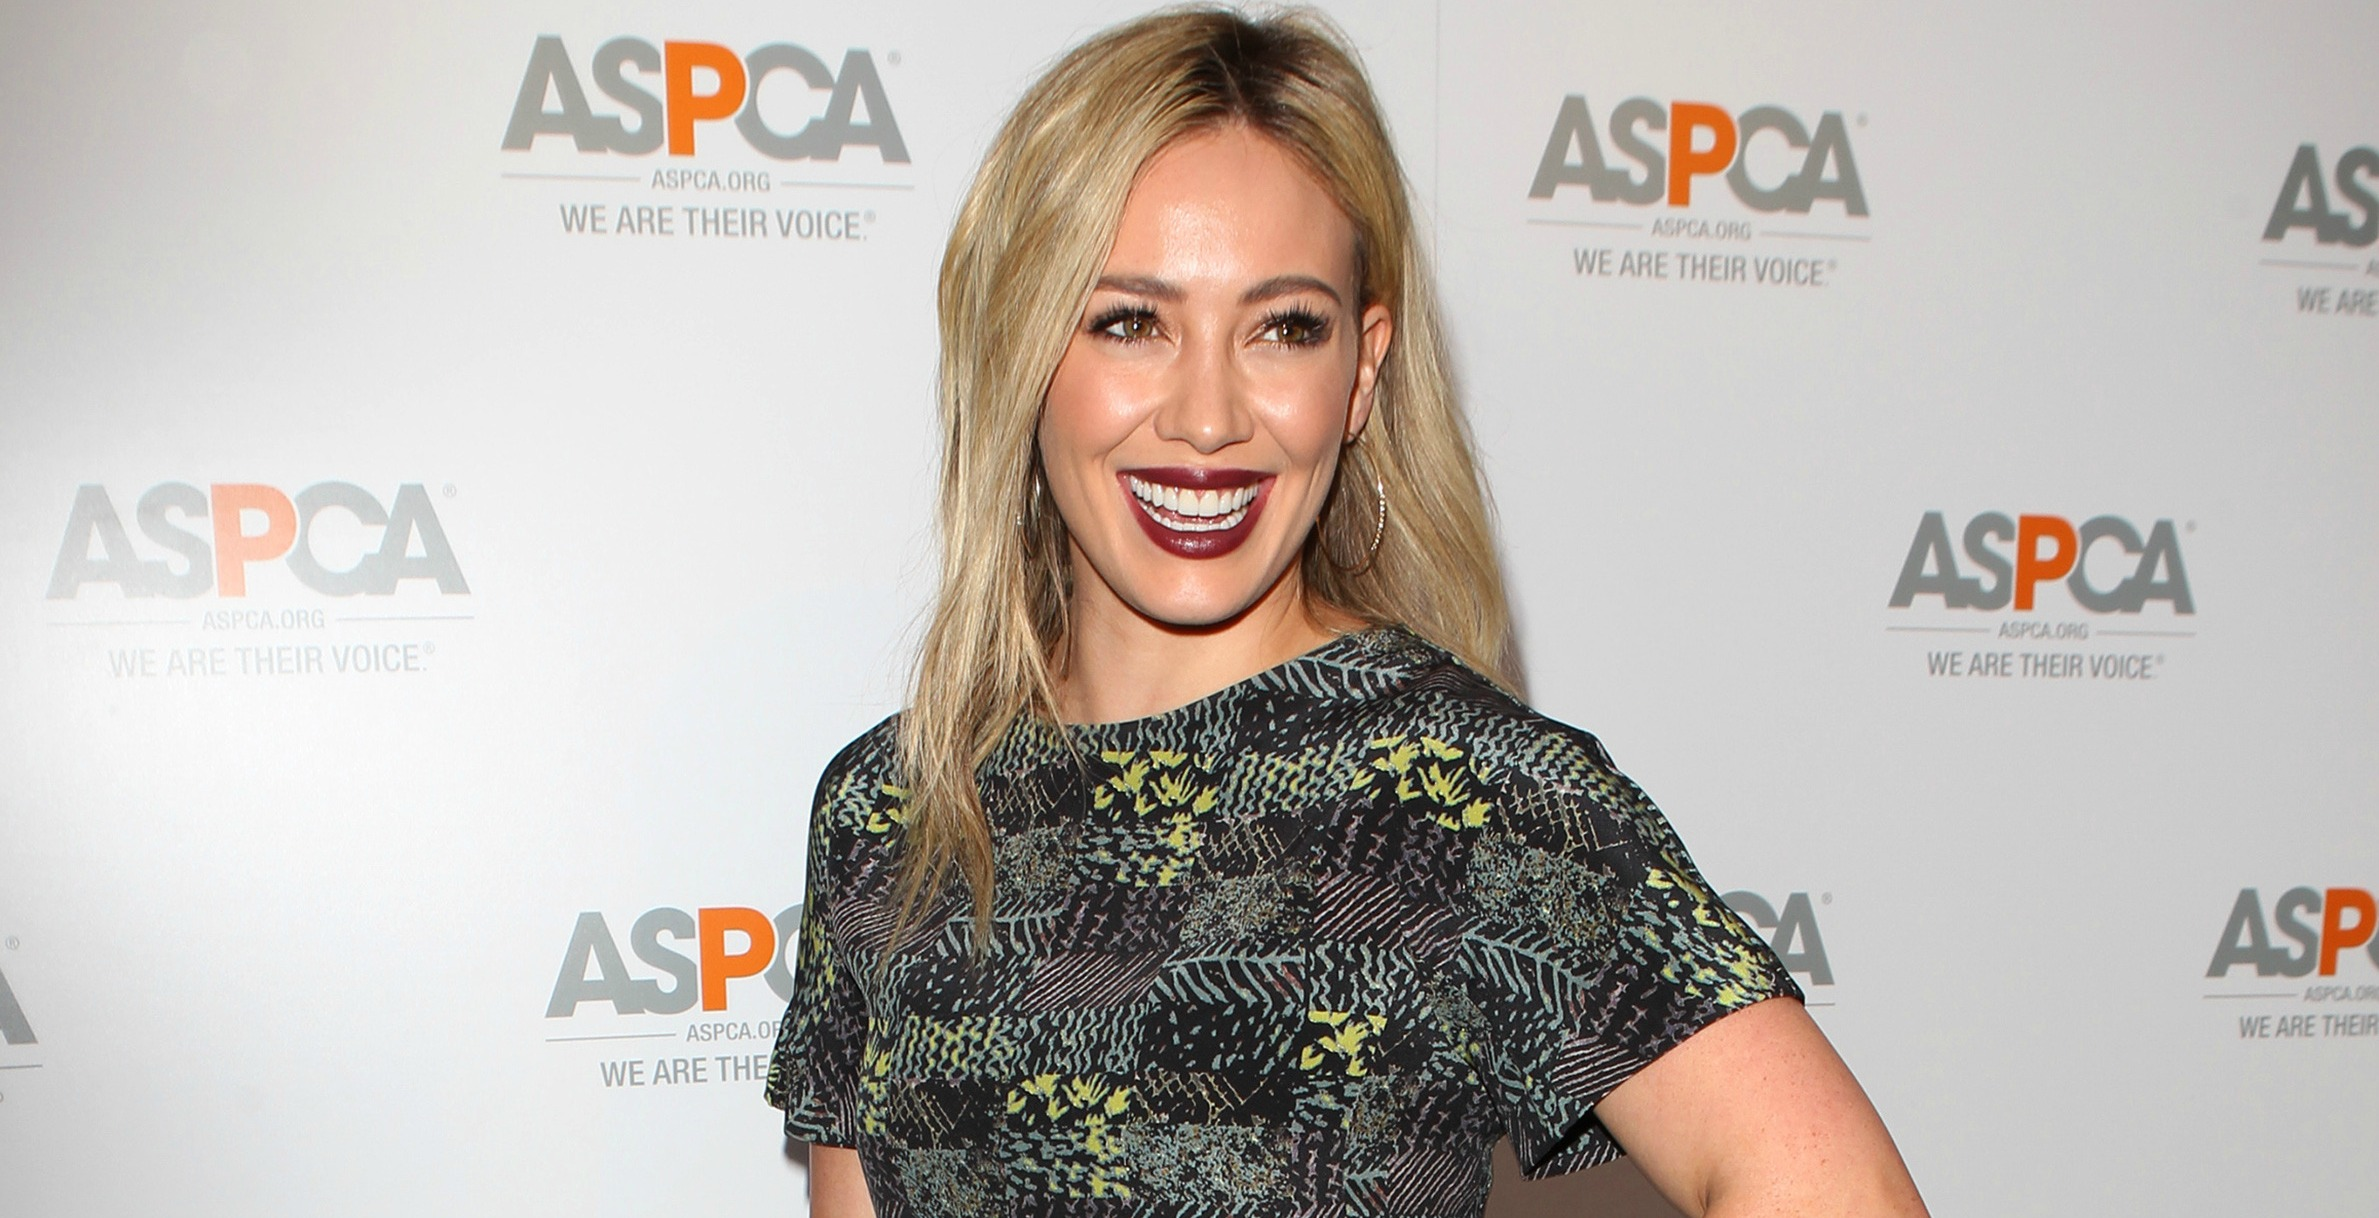 Hilary Duff reveals she and estranged husband Mike Comrie care about each other